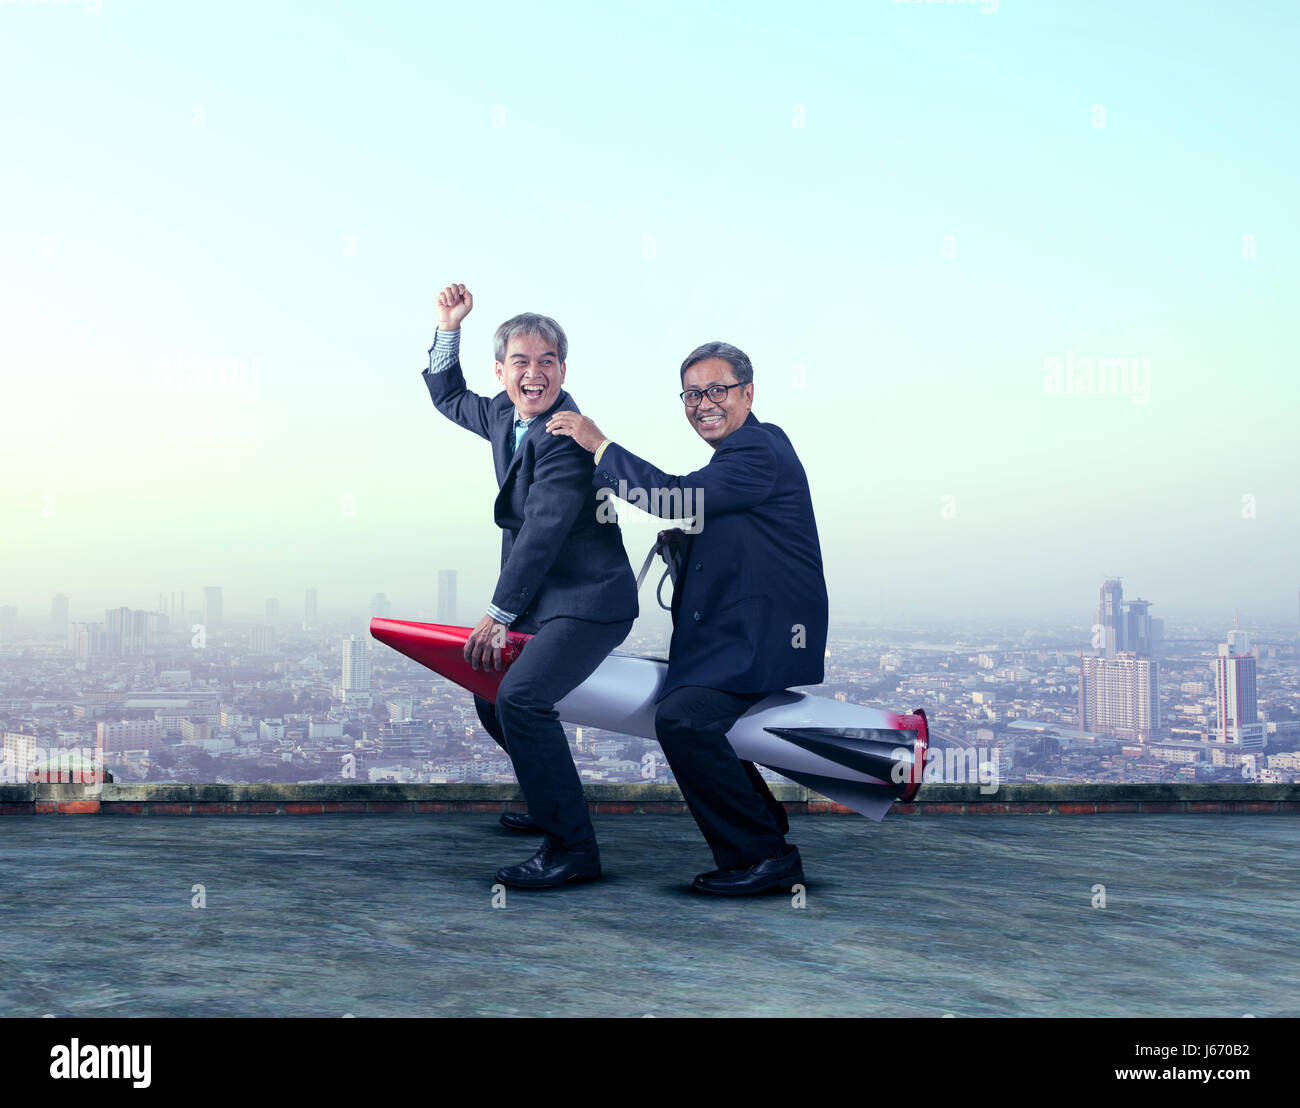 Funny Rocket High Resolution Stock Photography and Images - Alamy